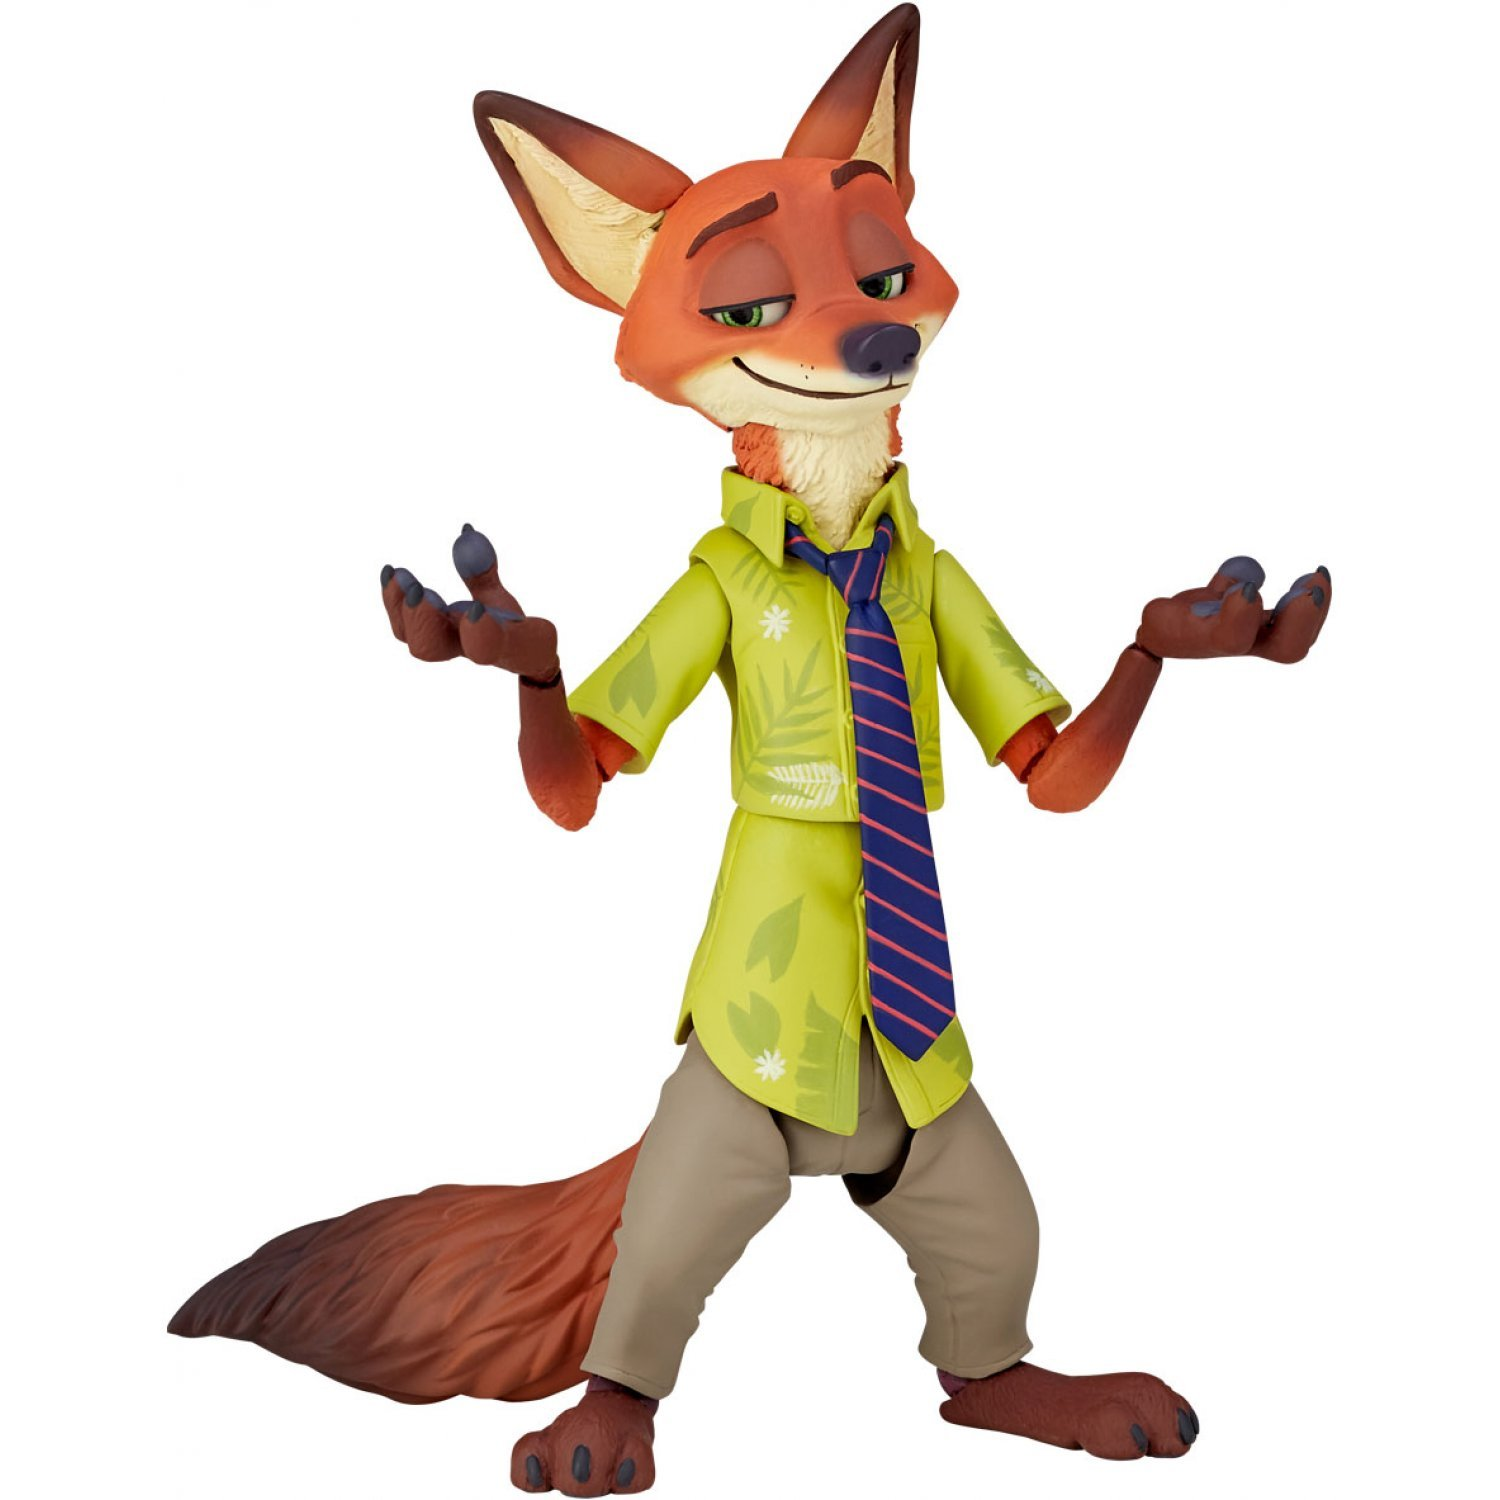 zootopia full movie hd with english subtitles